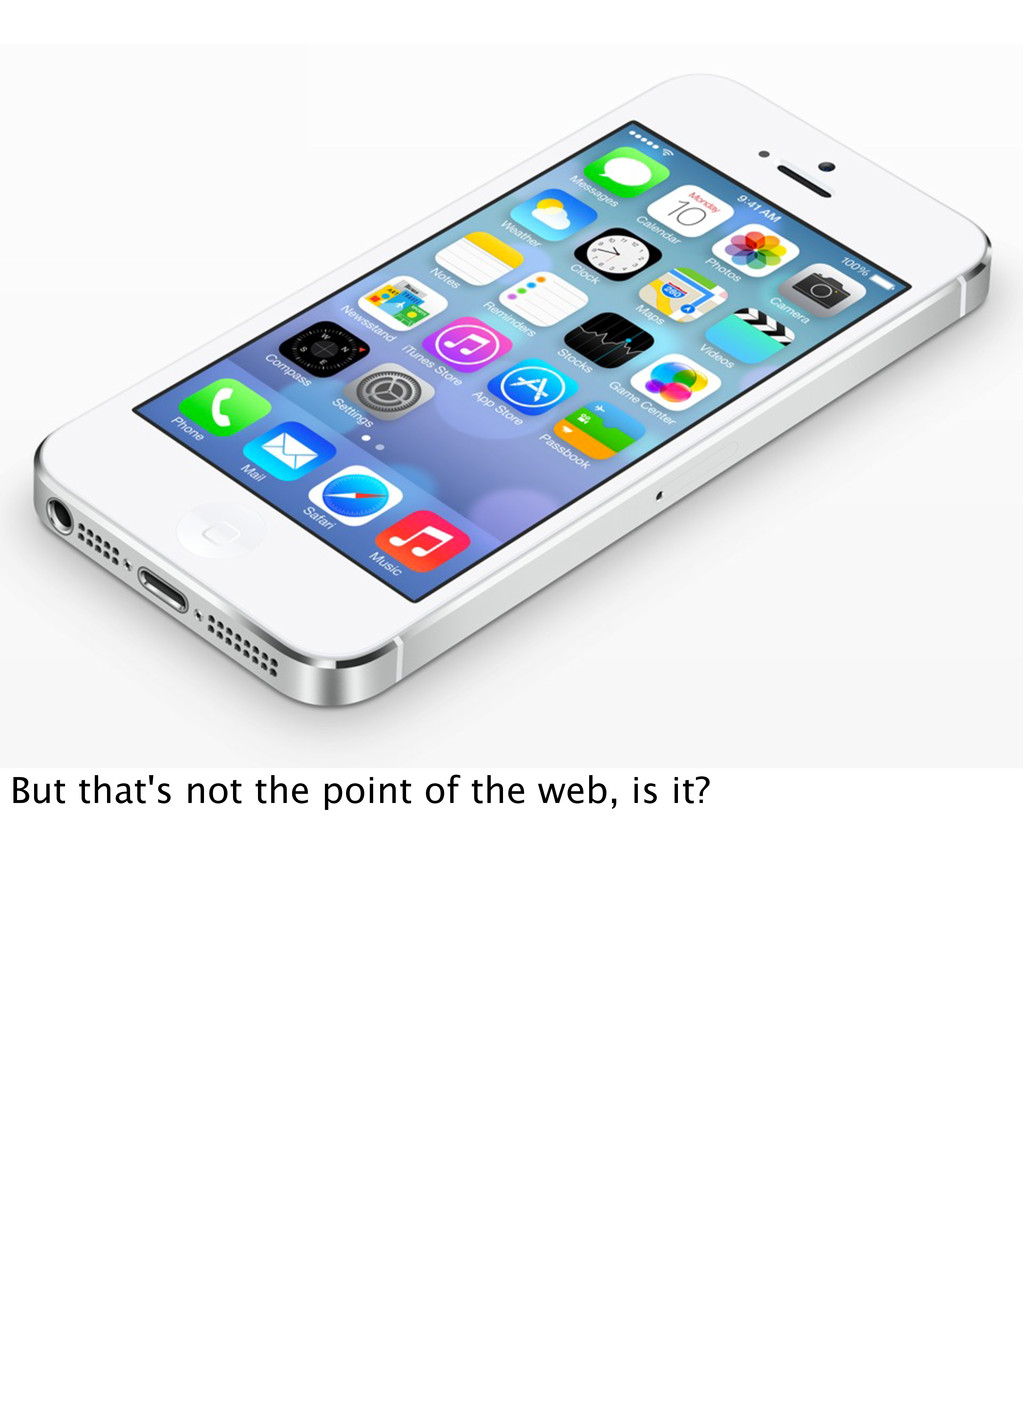 But that's not the point of the web, is it?